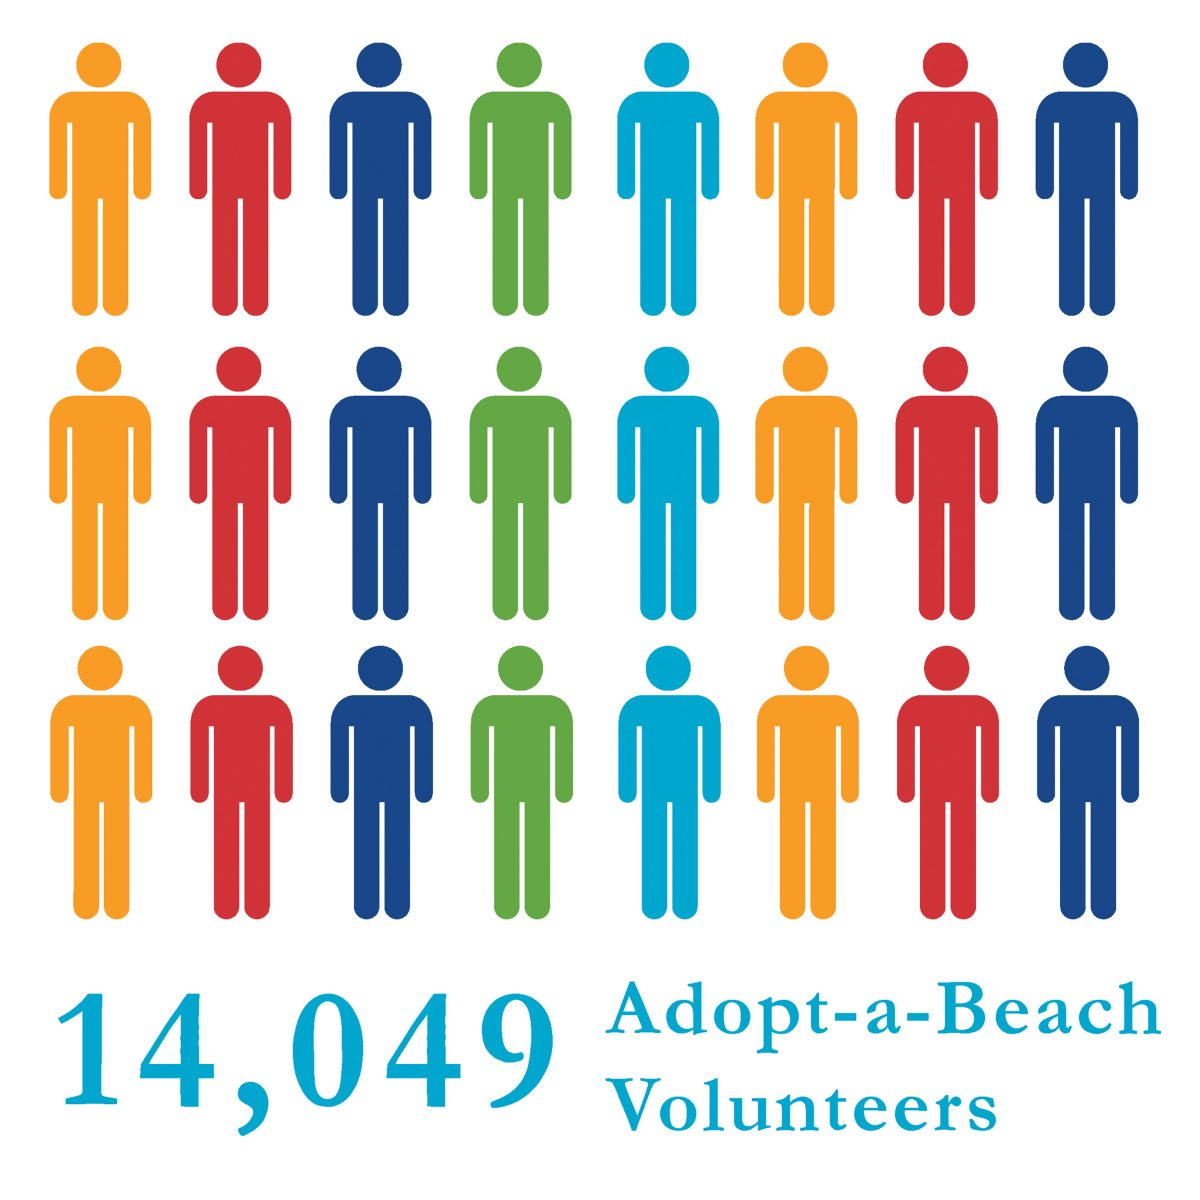 14,049 people volunteered with Adopt-a-Beach in 2017